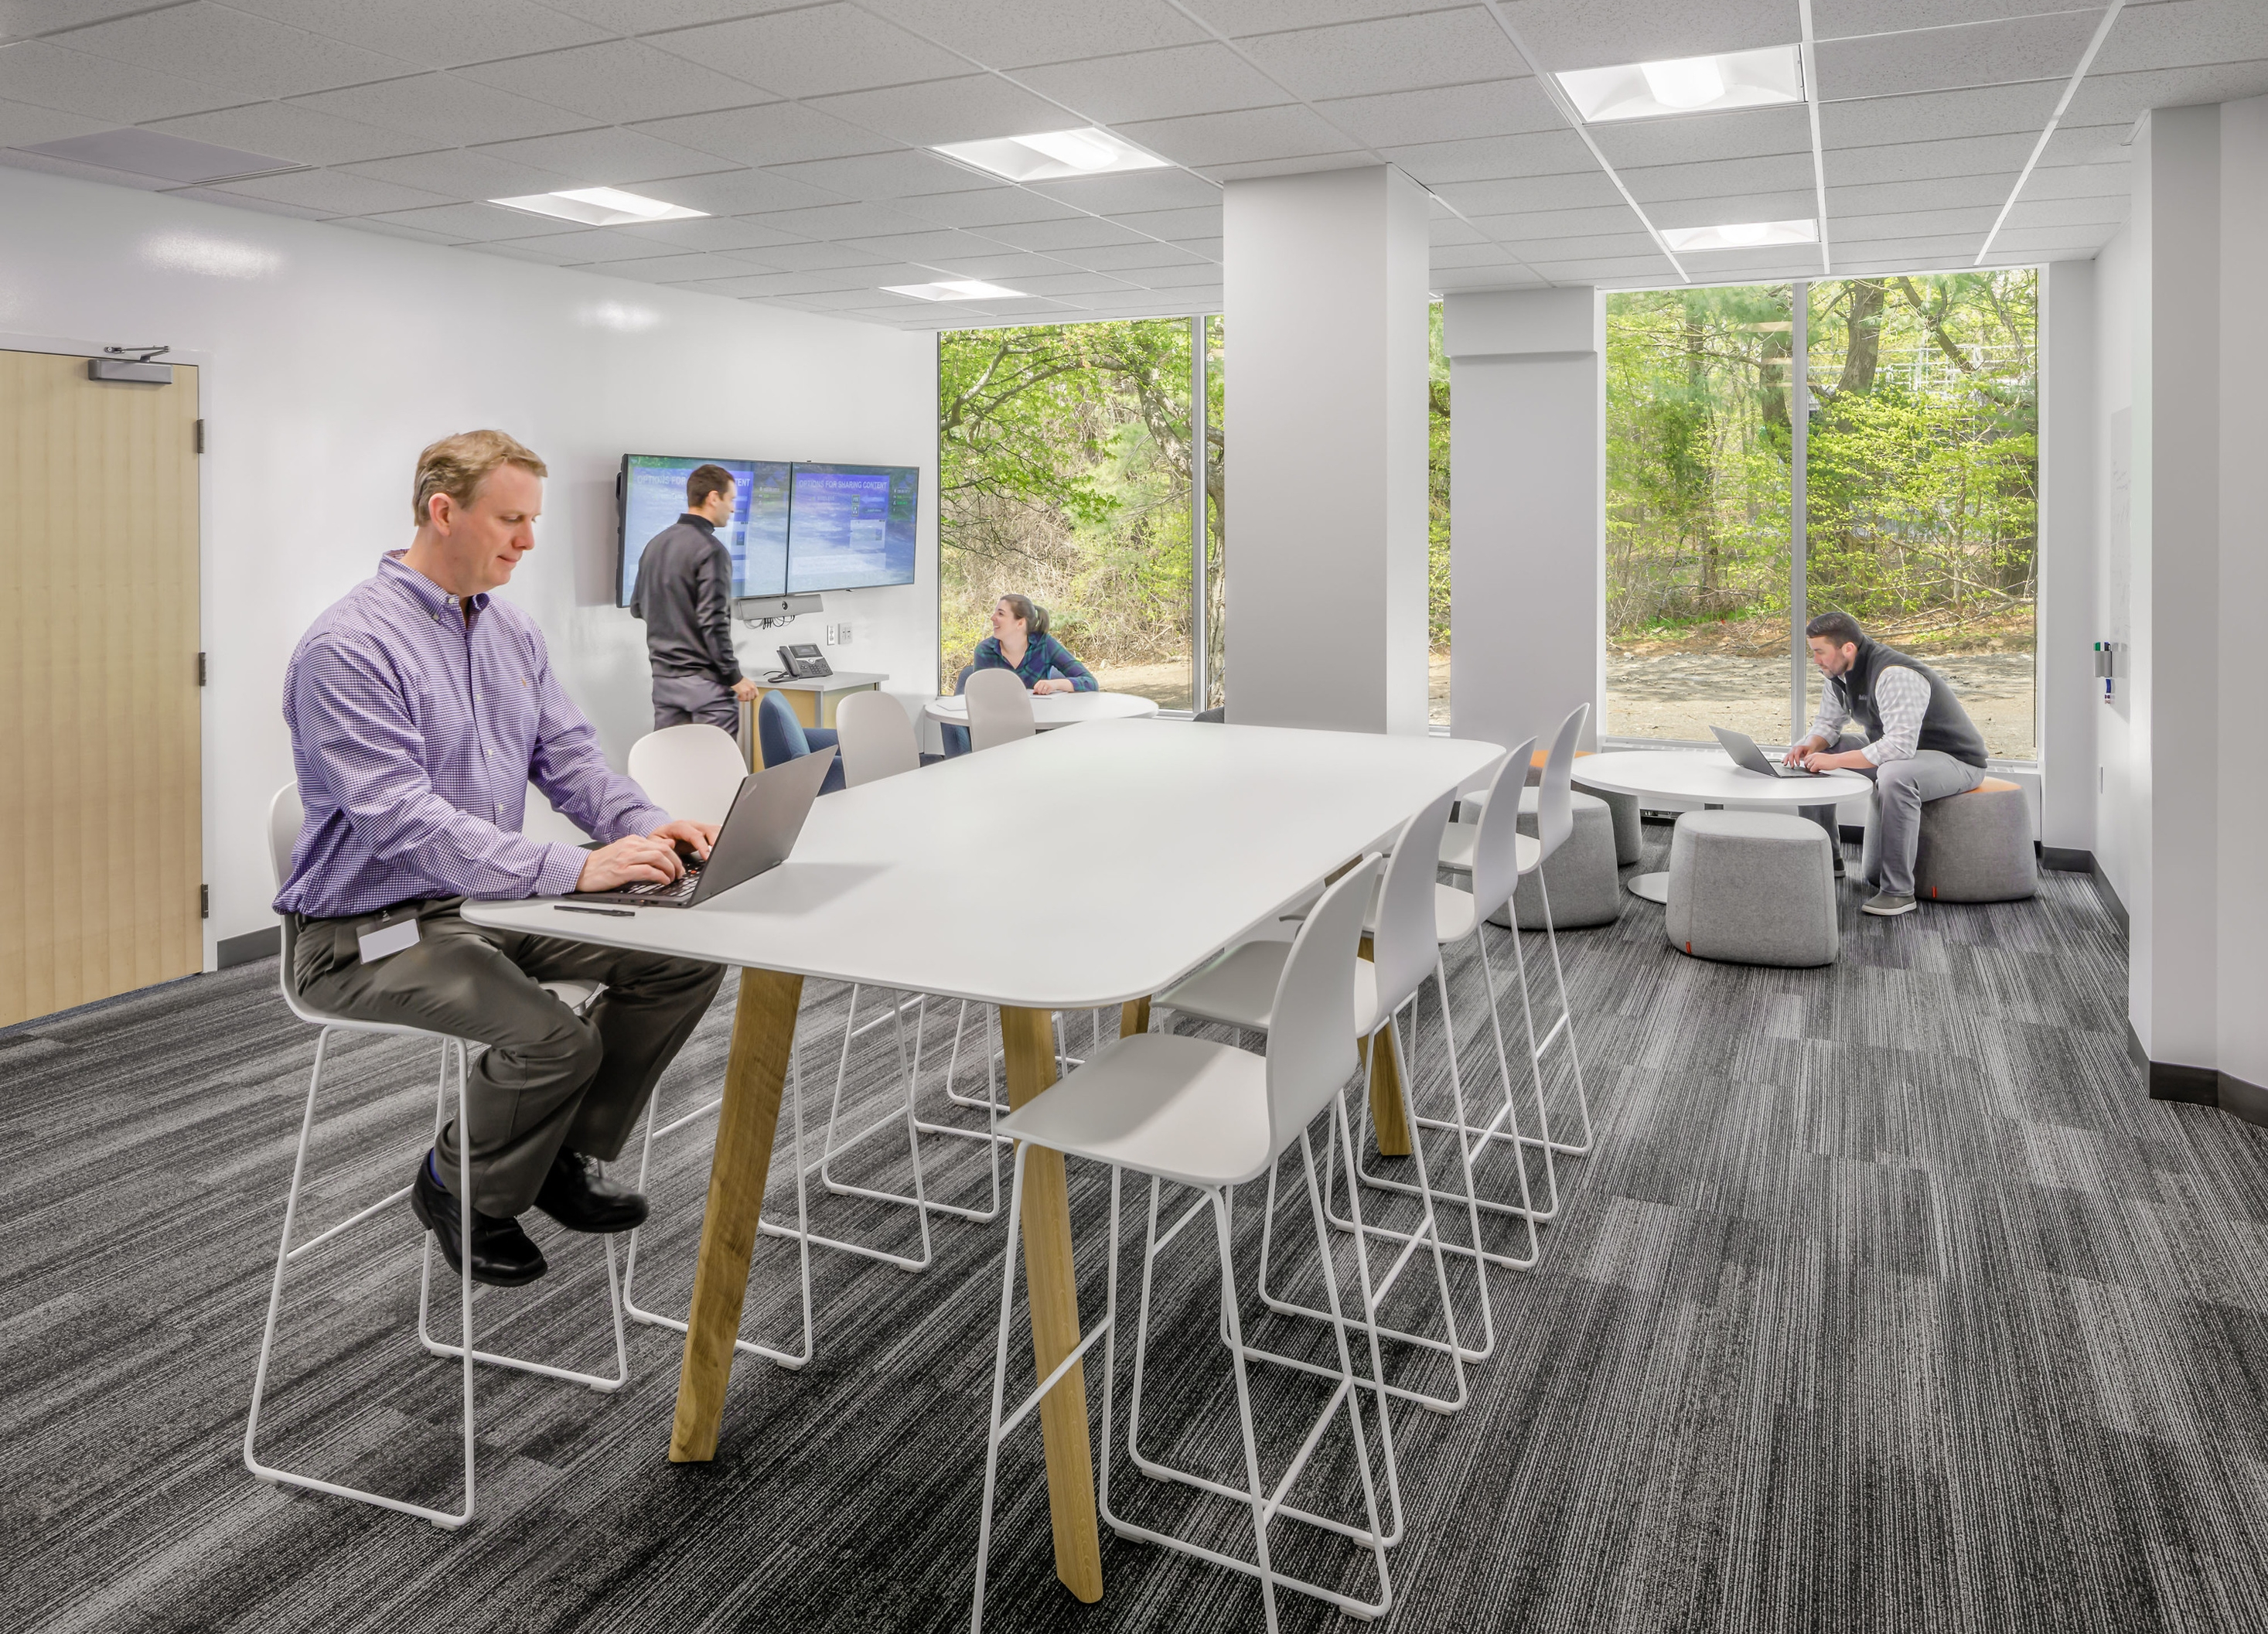 Medical devices and support functions create a Center of Excellence at 125 Spring Street.